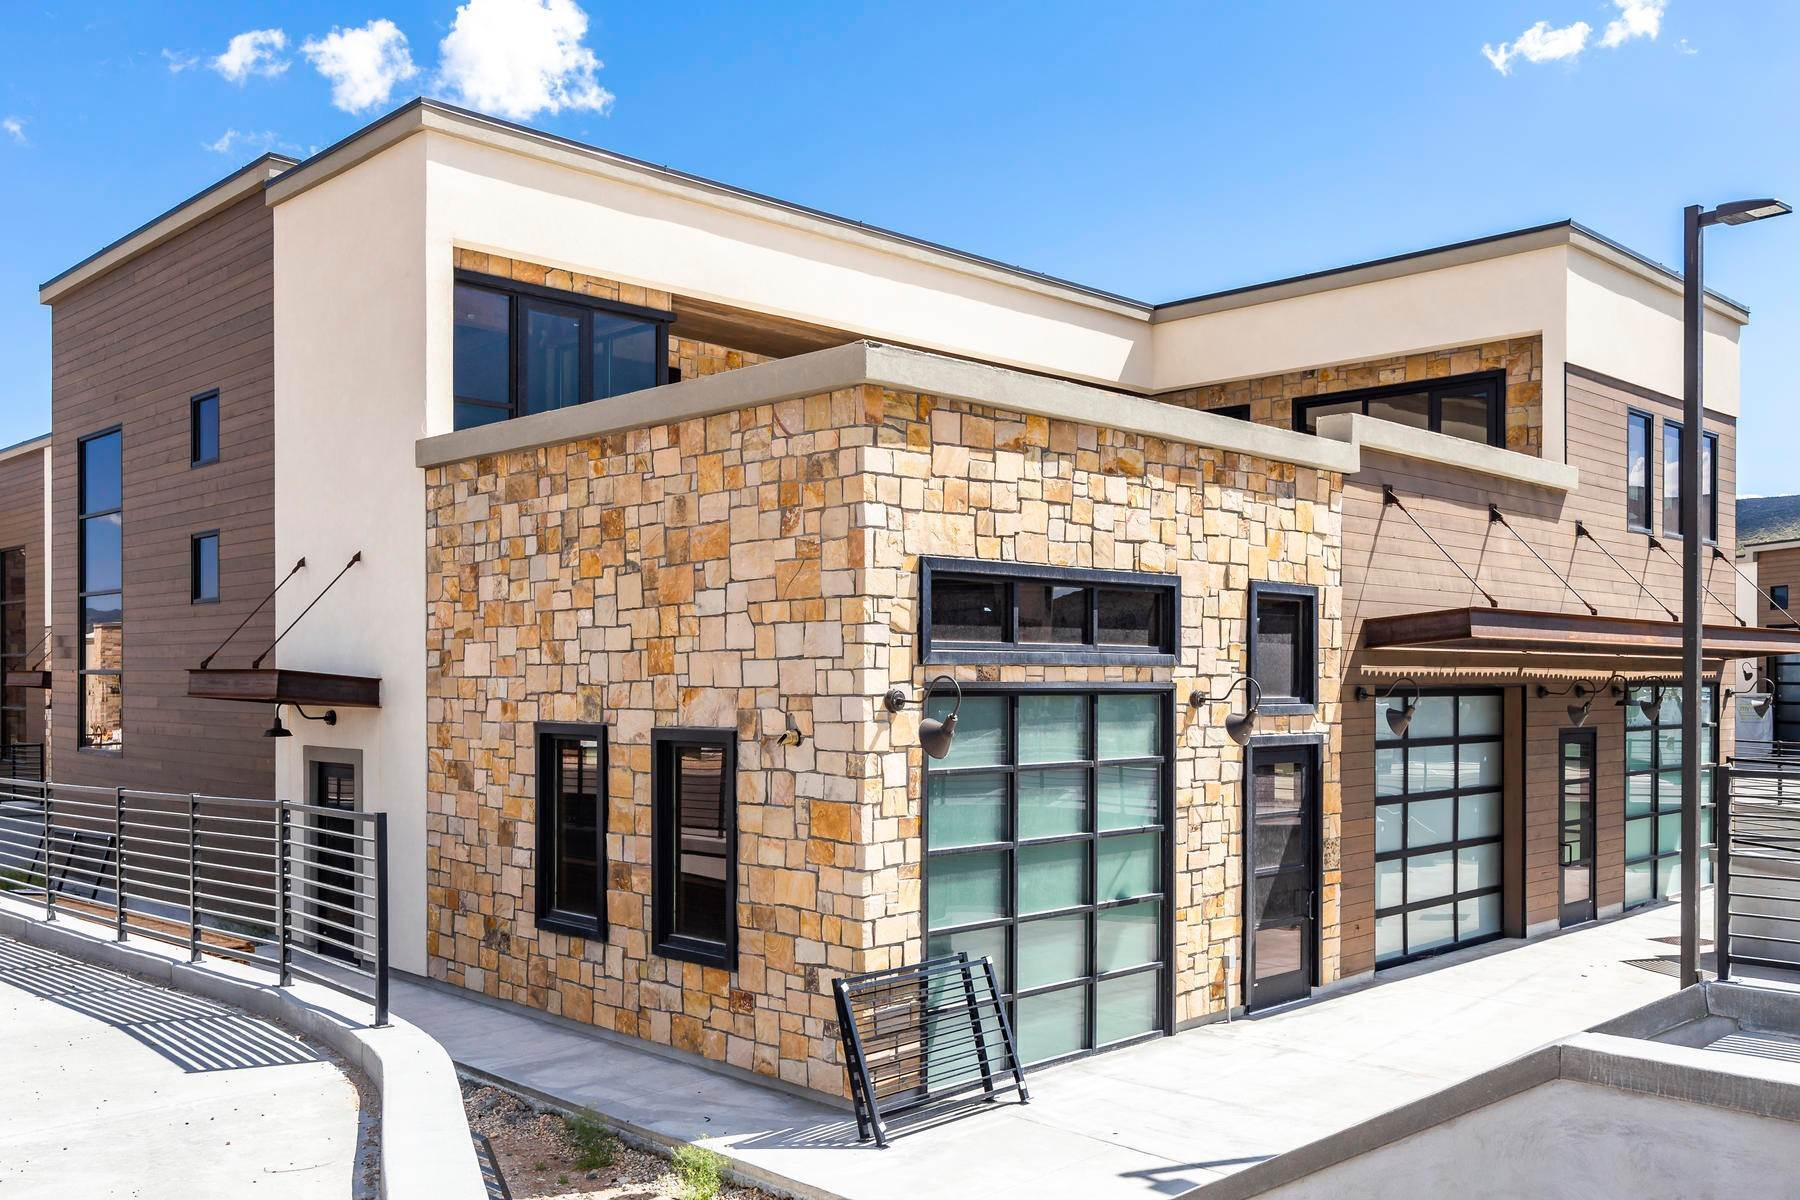 Condominiums for Sale at Mixed Use Development Opportunity Awaits In Park City With Over 28,000 SF 4554 Forestdale Dr, Building G Park City, Utah 84098 United States